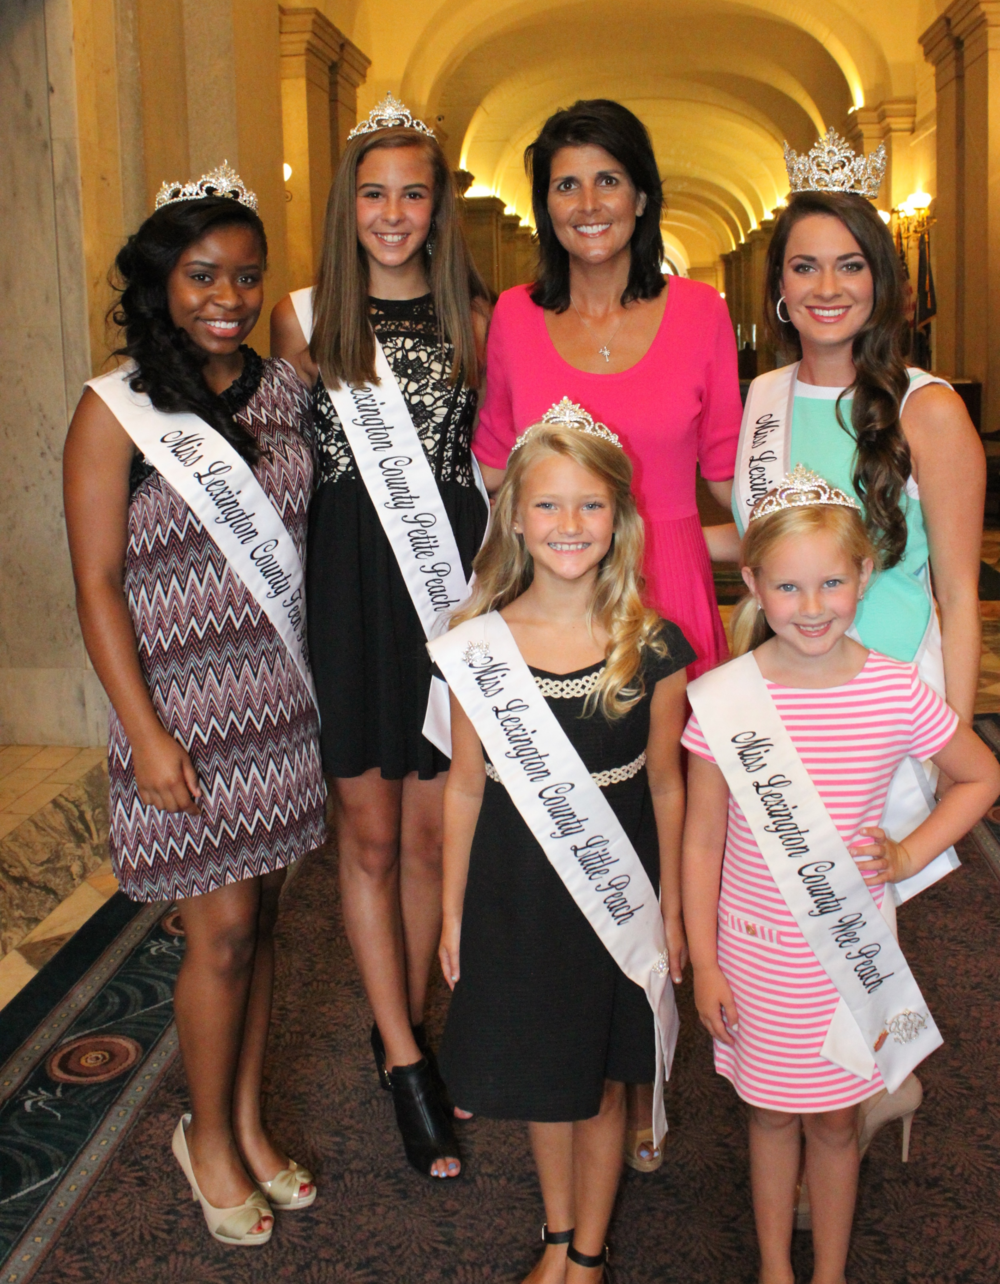 2015 Peach Queens and Governor Haley, left to right:  Cicely Deatrice Wise, Haley Noelle Heustess, Sarah-Katherine Nicole Cantrell, Governor Nikki Haley, Annalee Victoria Compton, and Lindsey Morgan Roof.